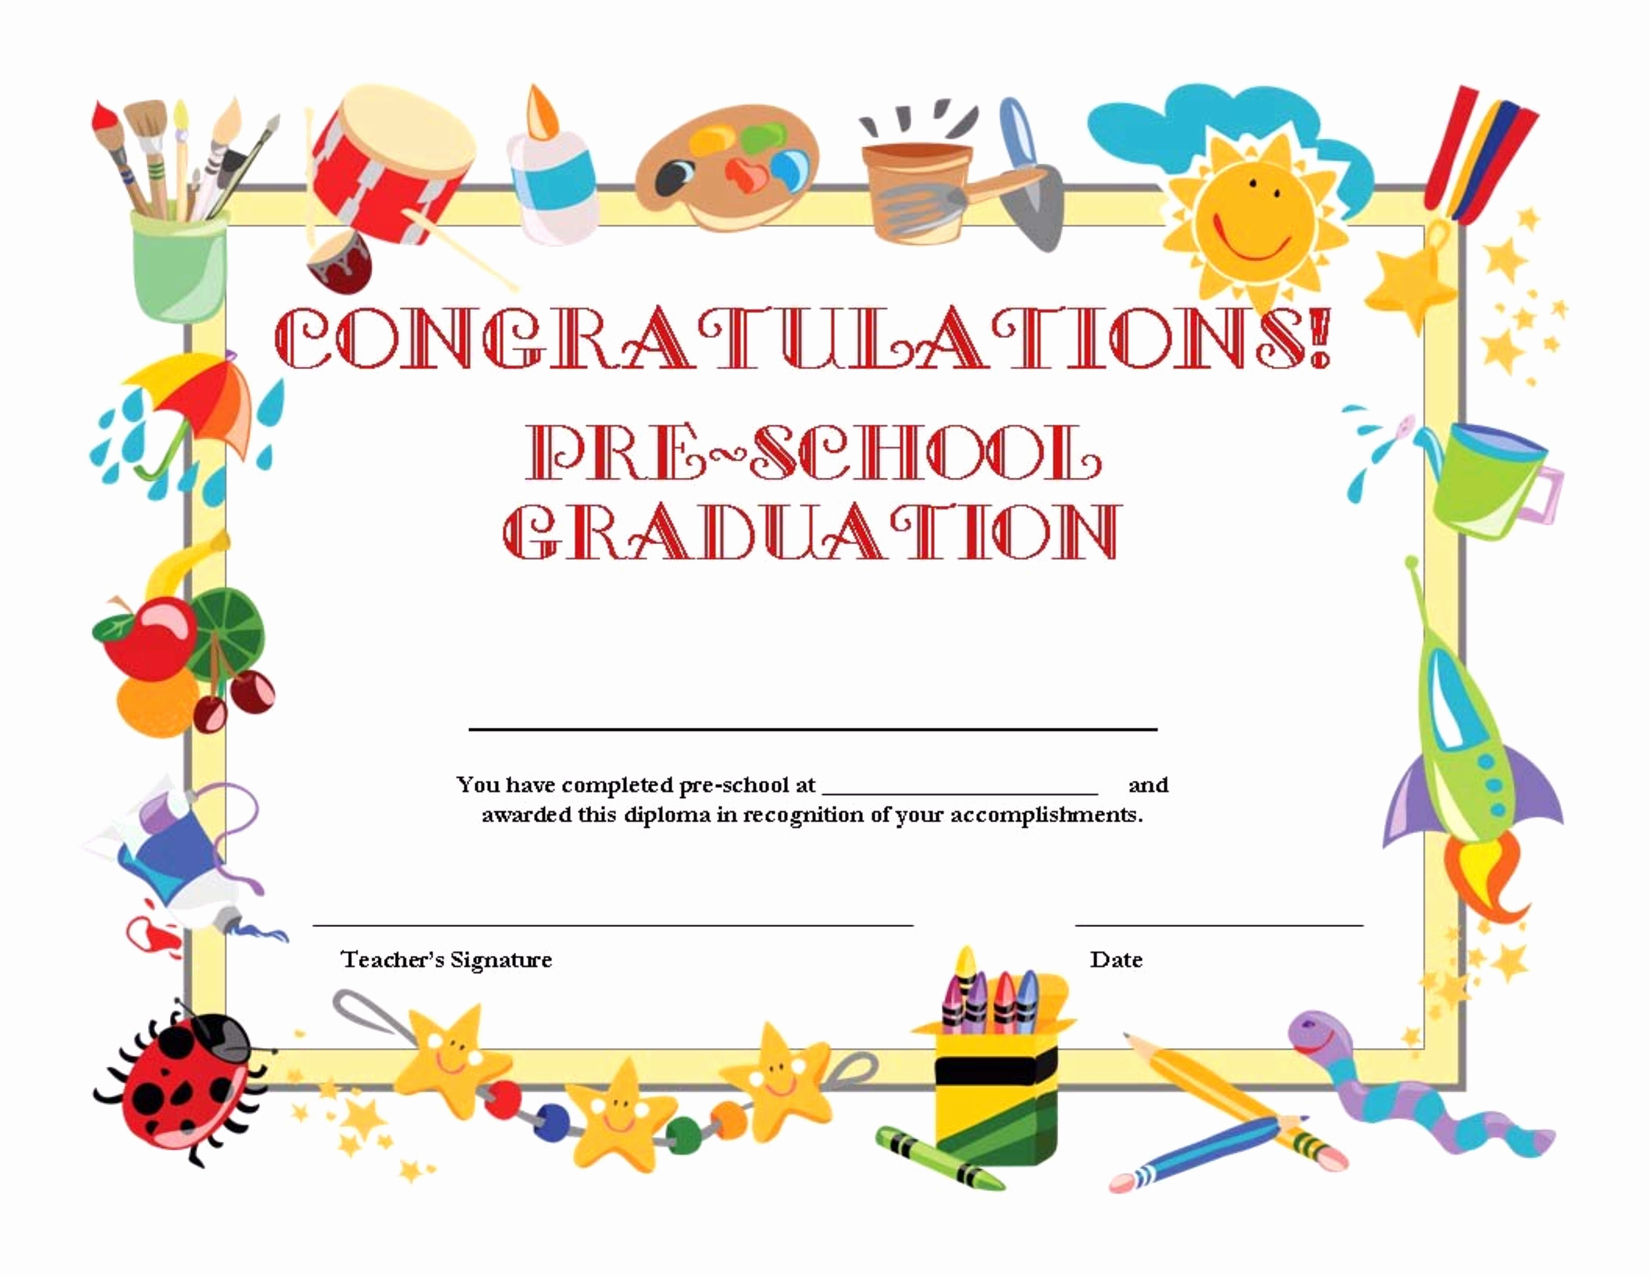 Preschool Graduation Certificate Template Best Of Preschool Graduation Certificate Template Free